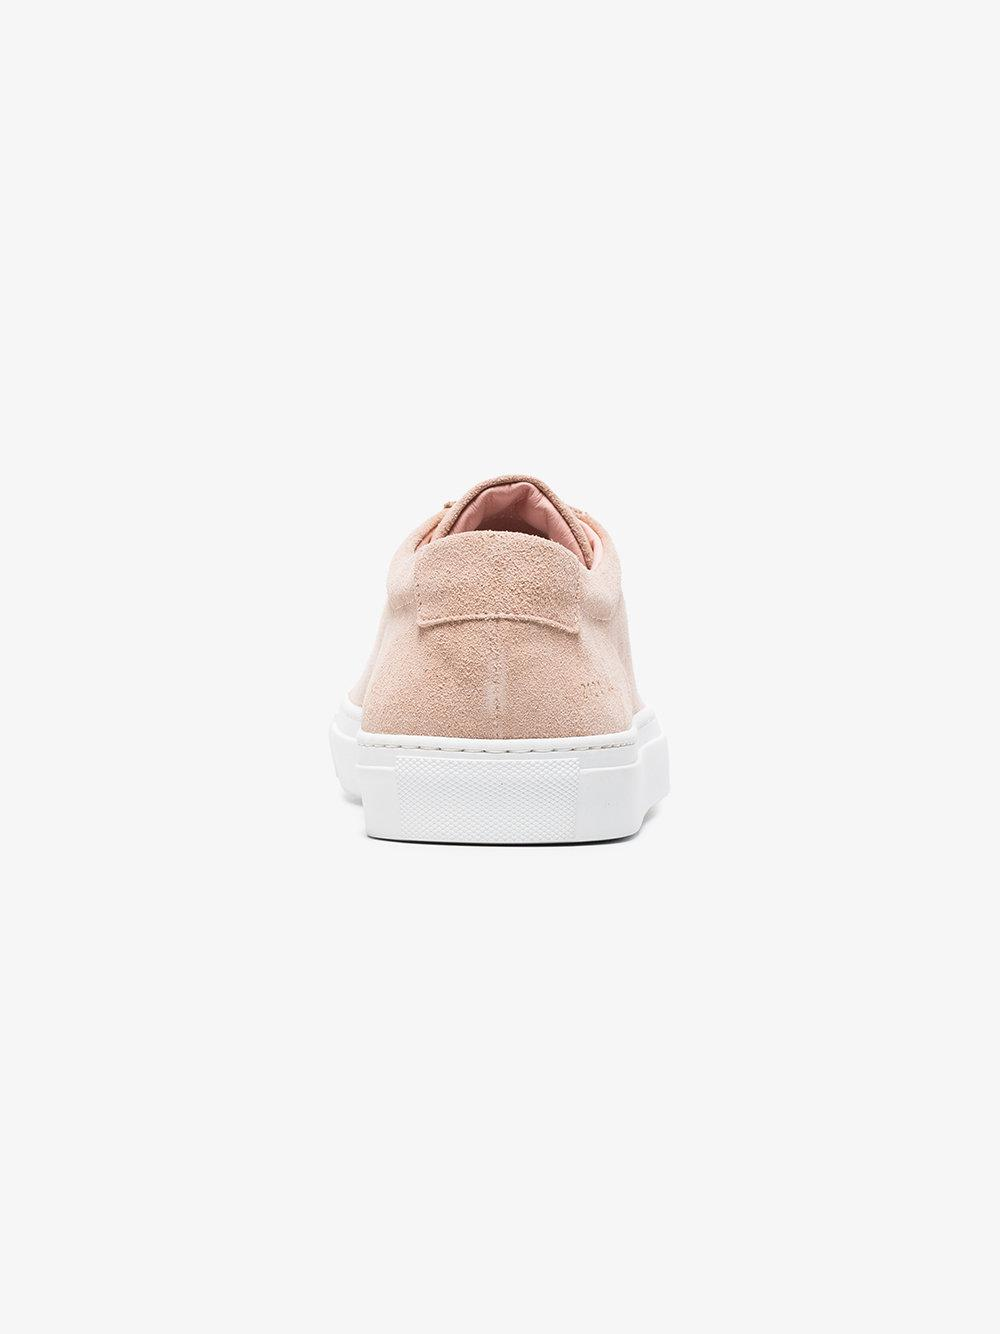 neutral Achilles suede sneakers - Pink & Purple Common Projects xHIUH